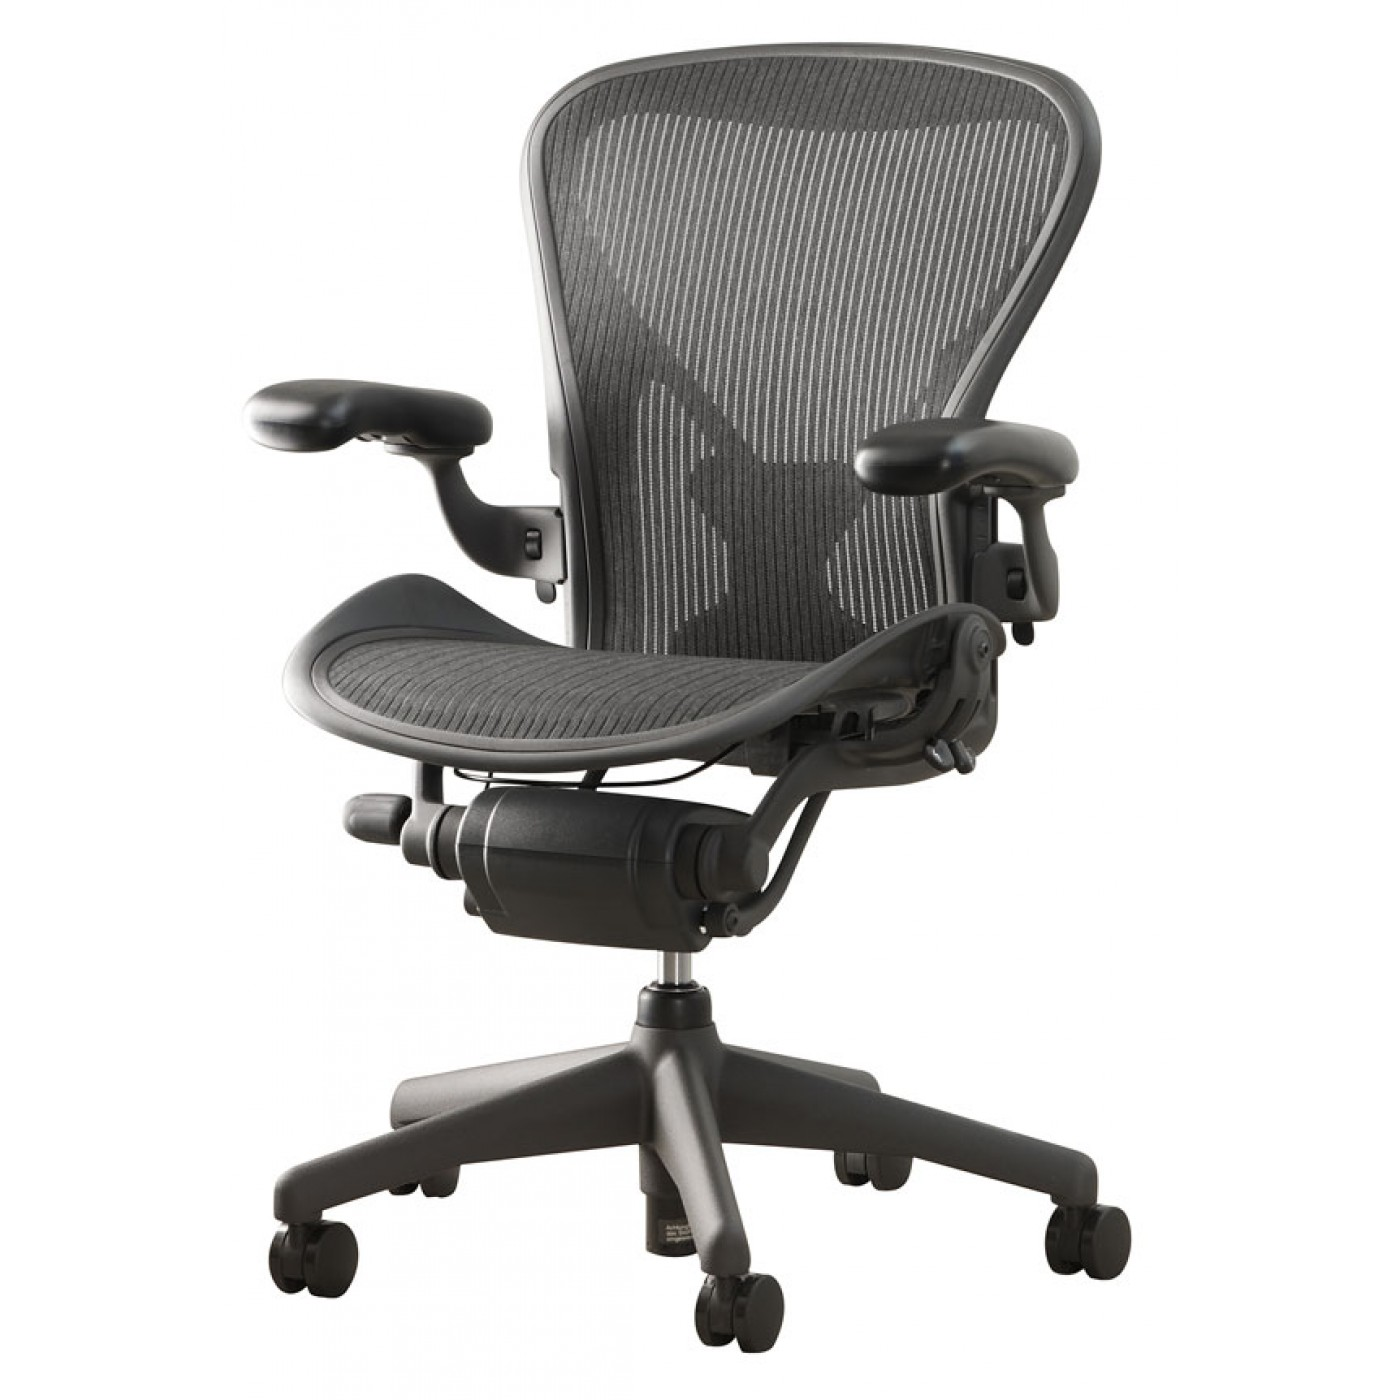 https://www.valueshop.dk/media/catalog/product/7/4/7485.herman-miller-aeron-chair_1.jpg